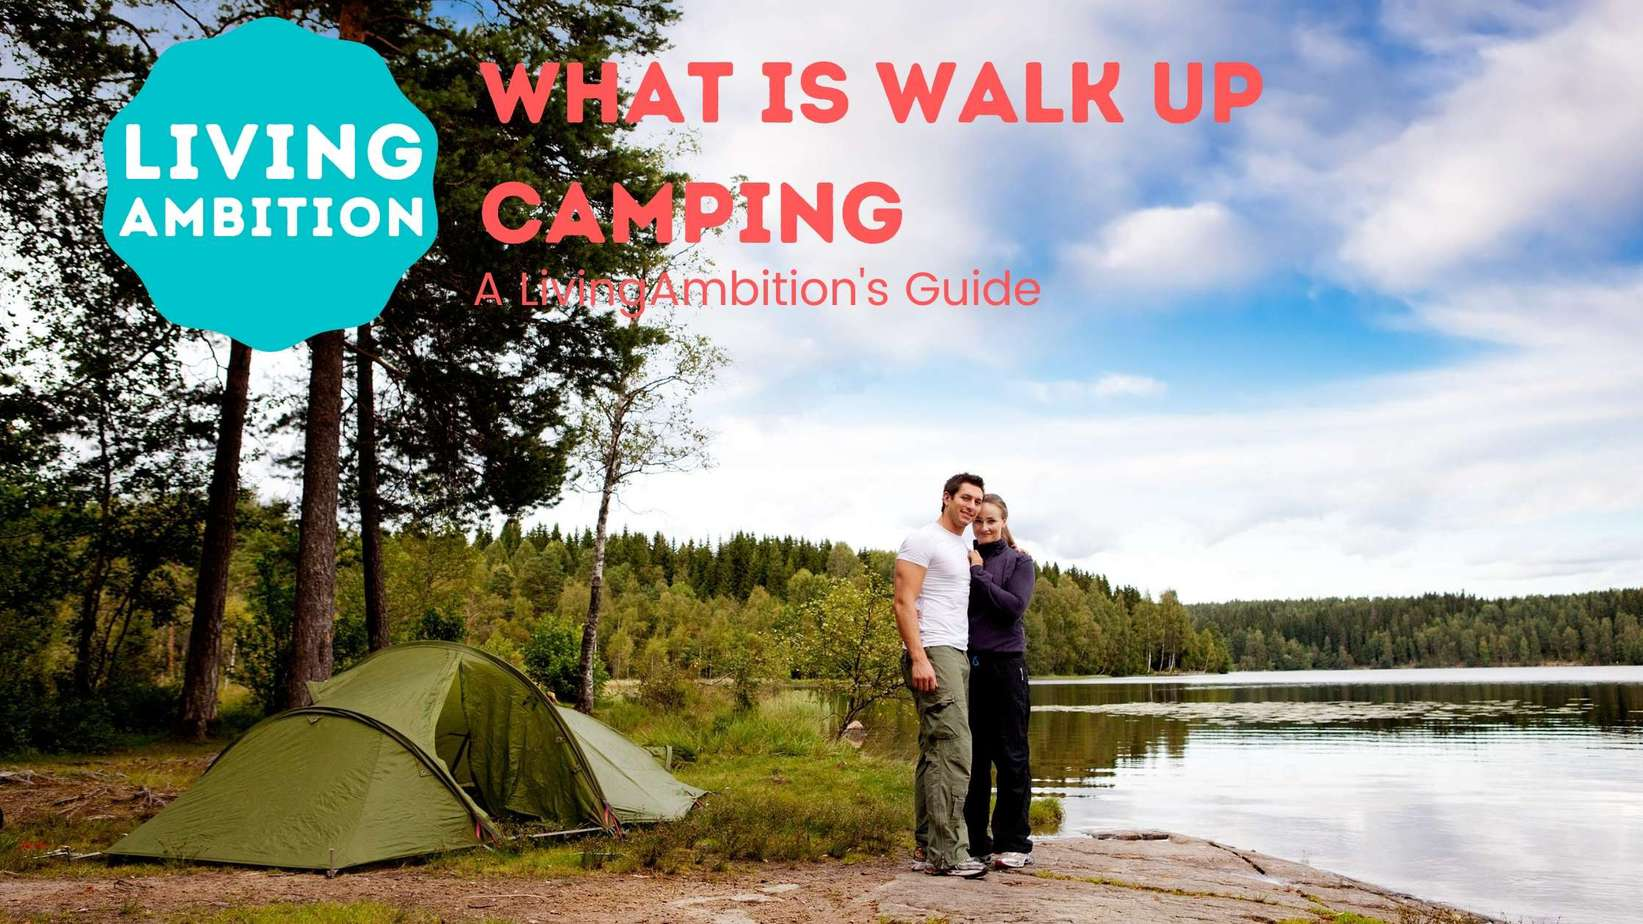 What is Walk Up Camping